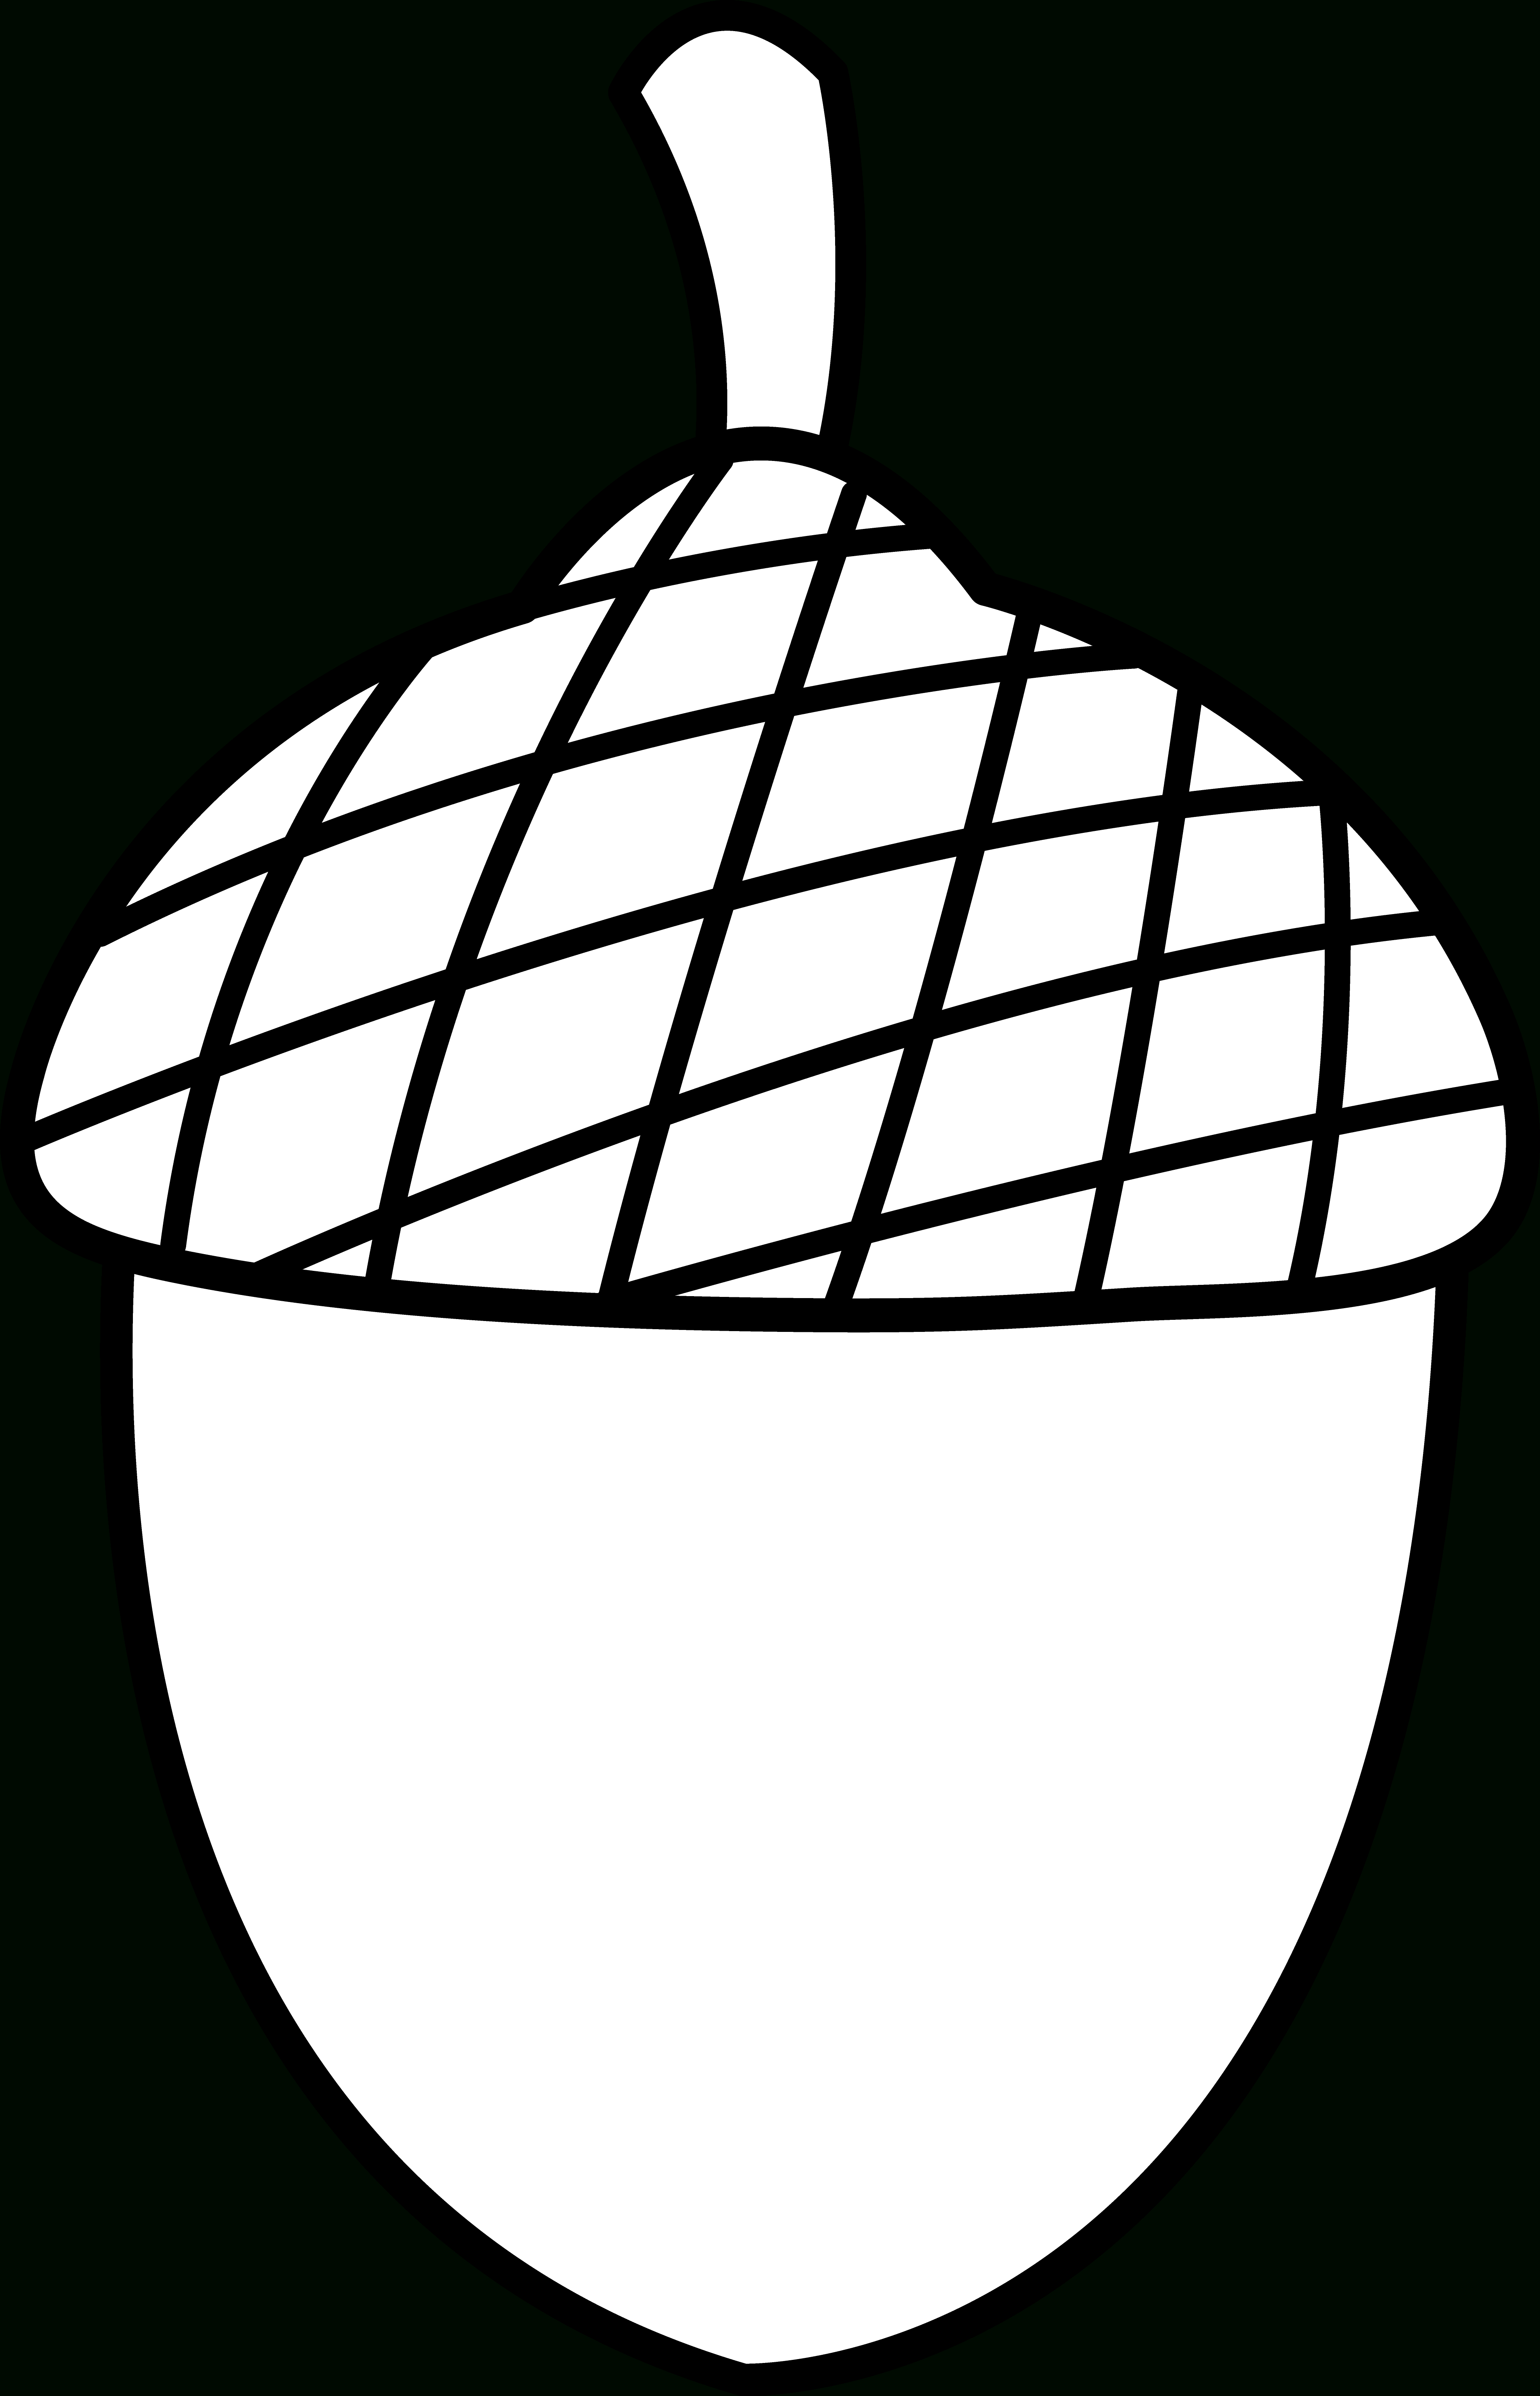 Free Acorn Pictures, Download Free Clip Art, Free Clip Art On - Acorn Template Free Printable